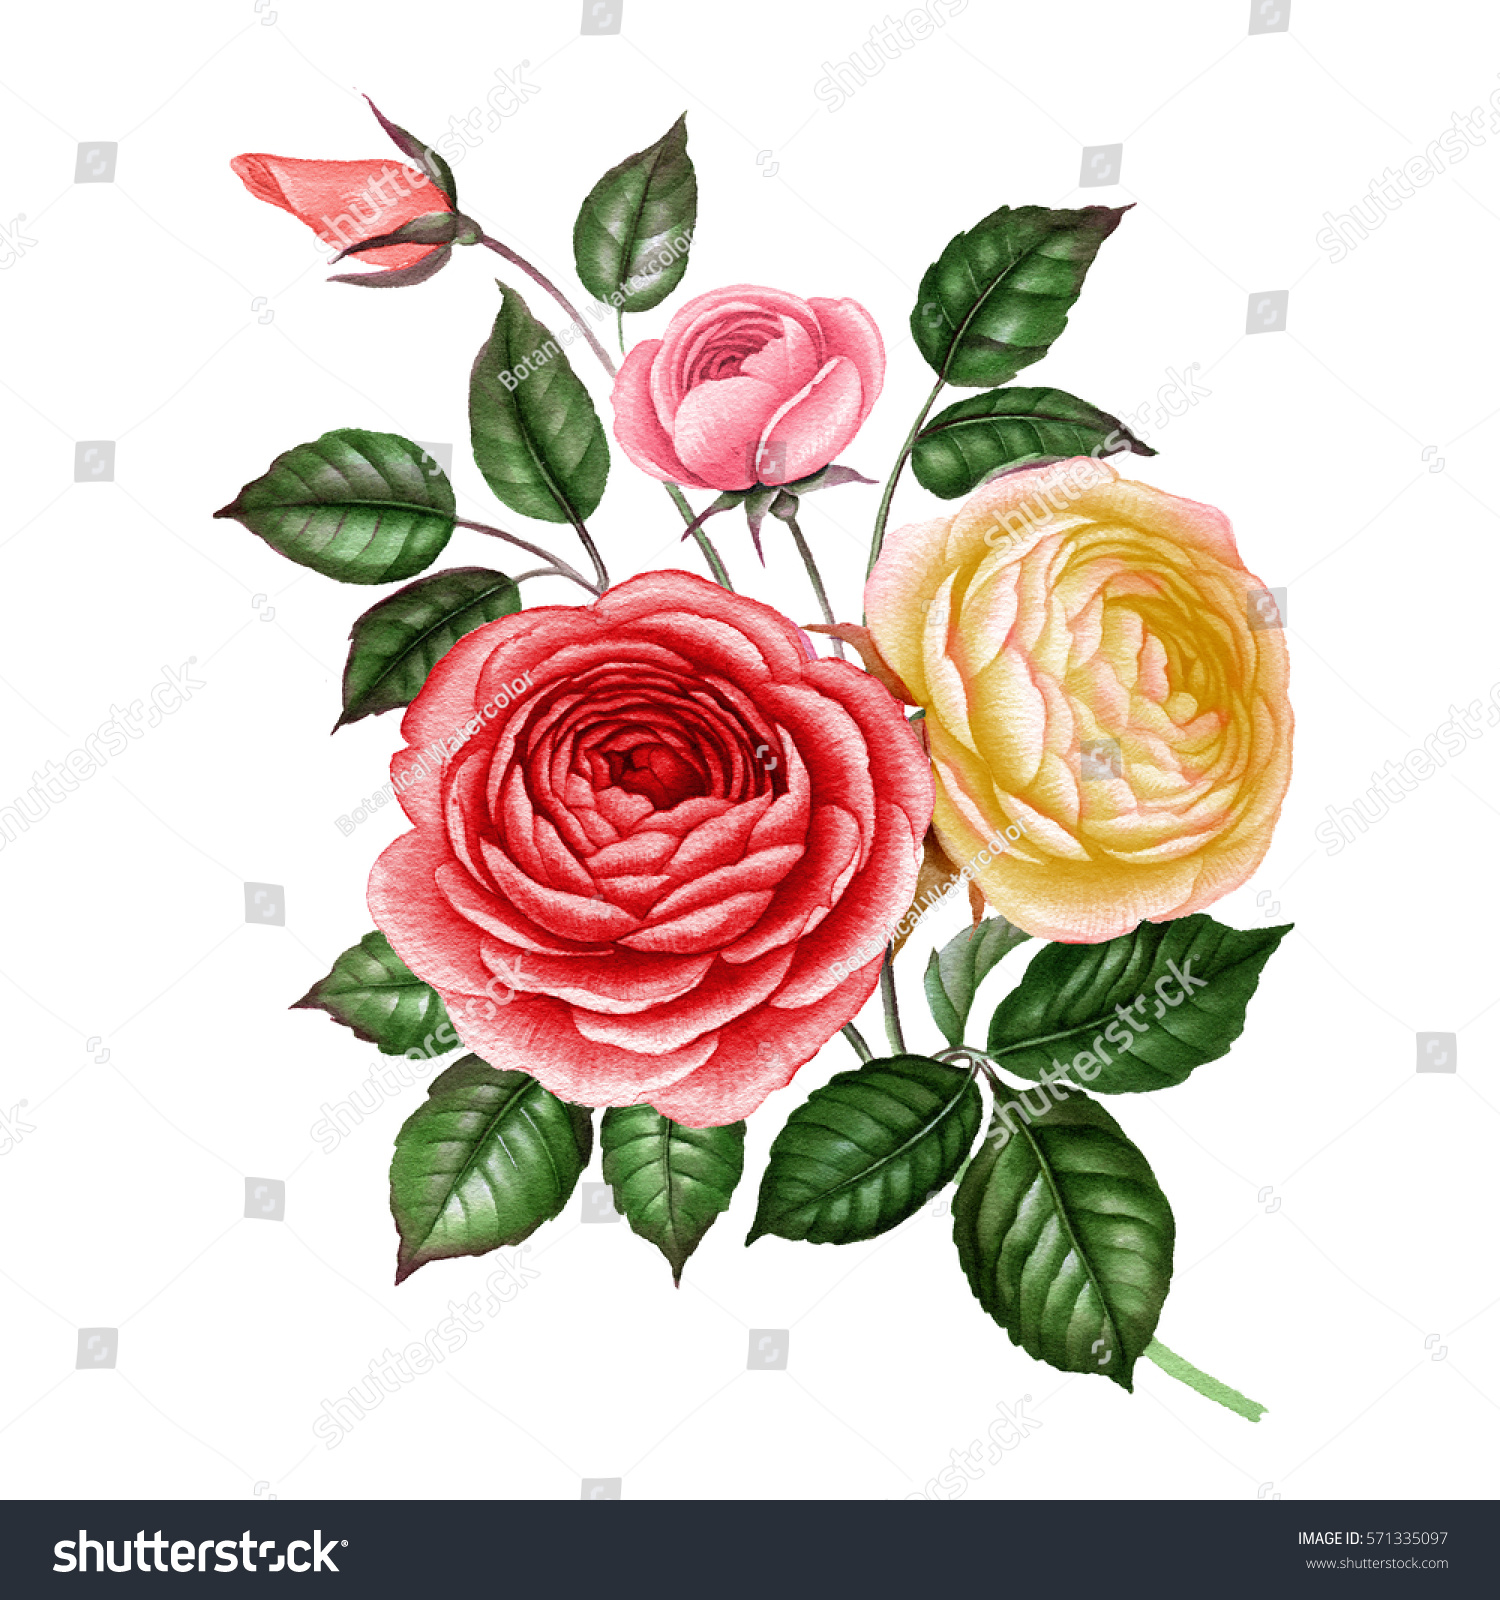 Red Rose Watercolor White Rose Watercolor Stock Illustration